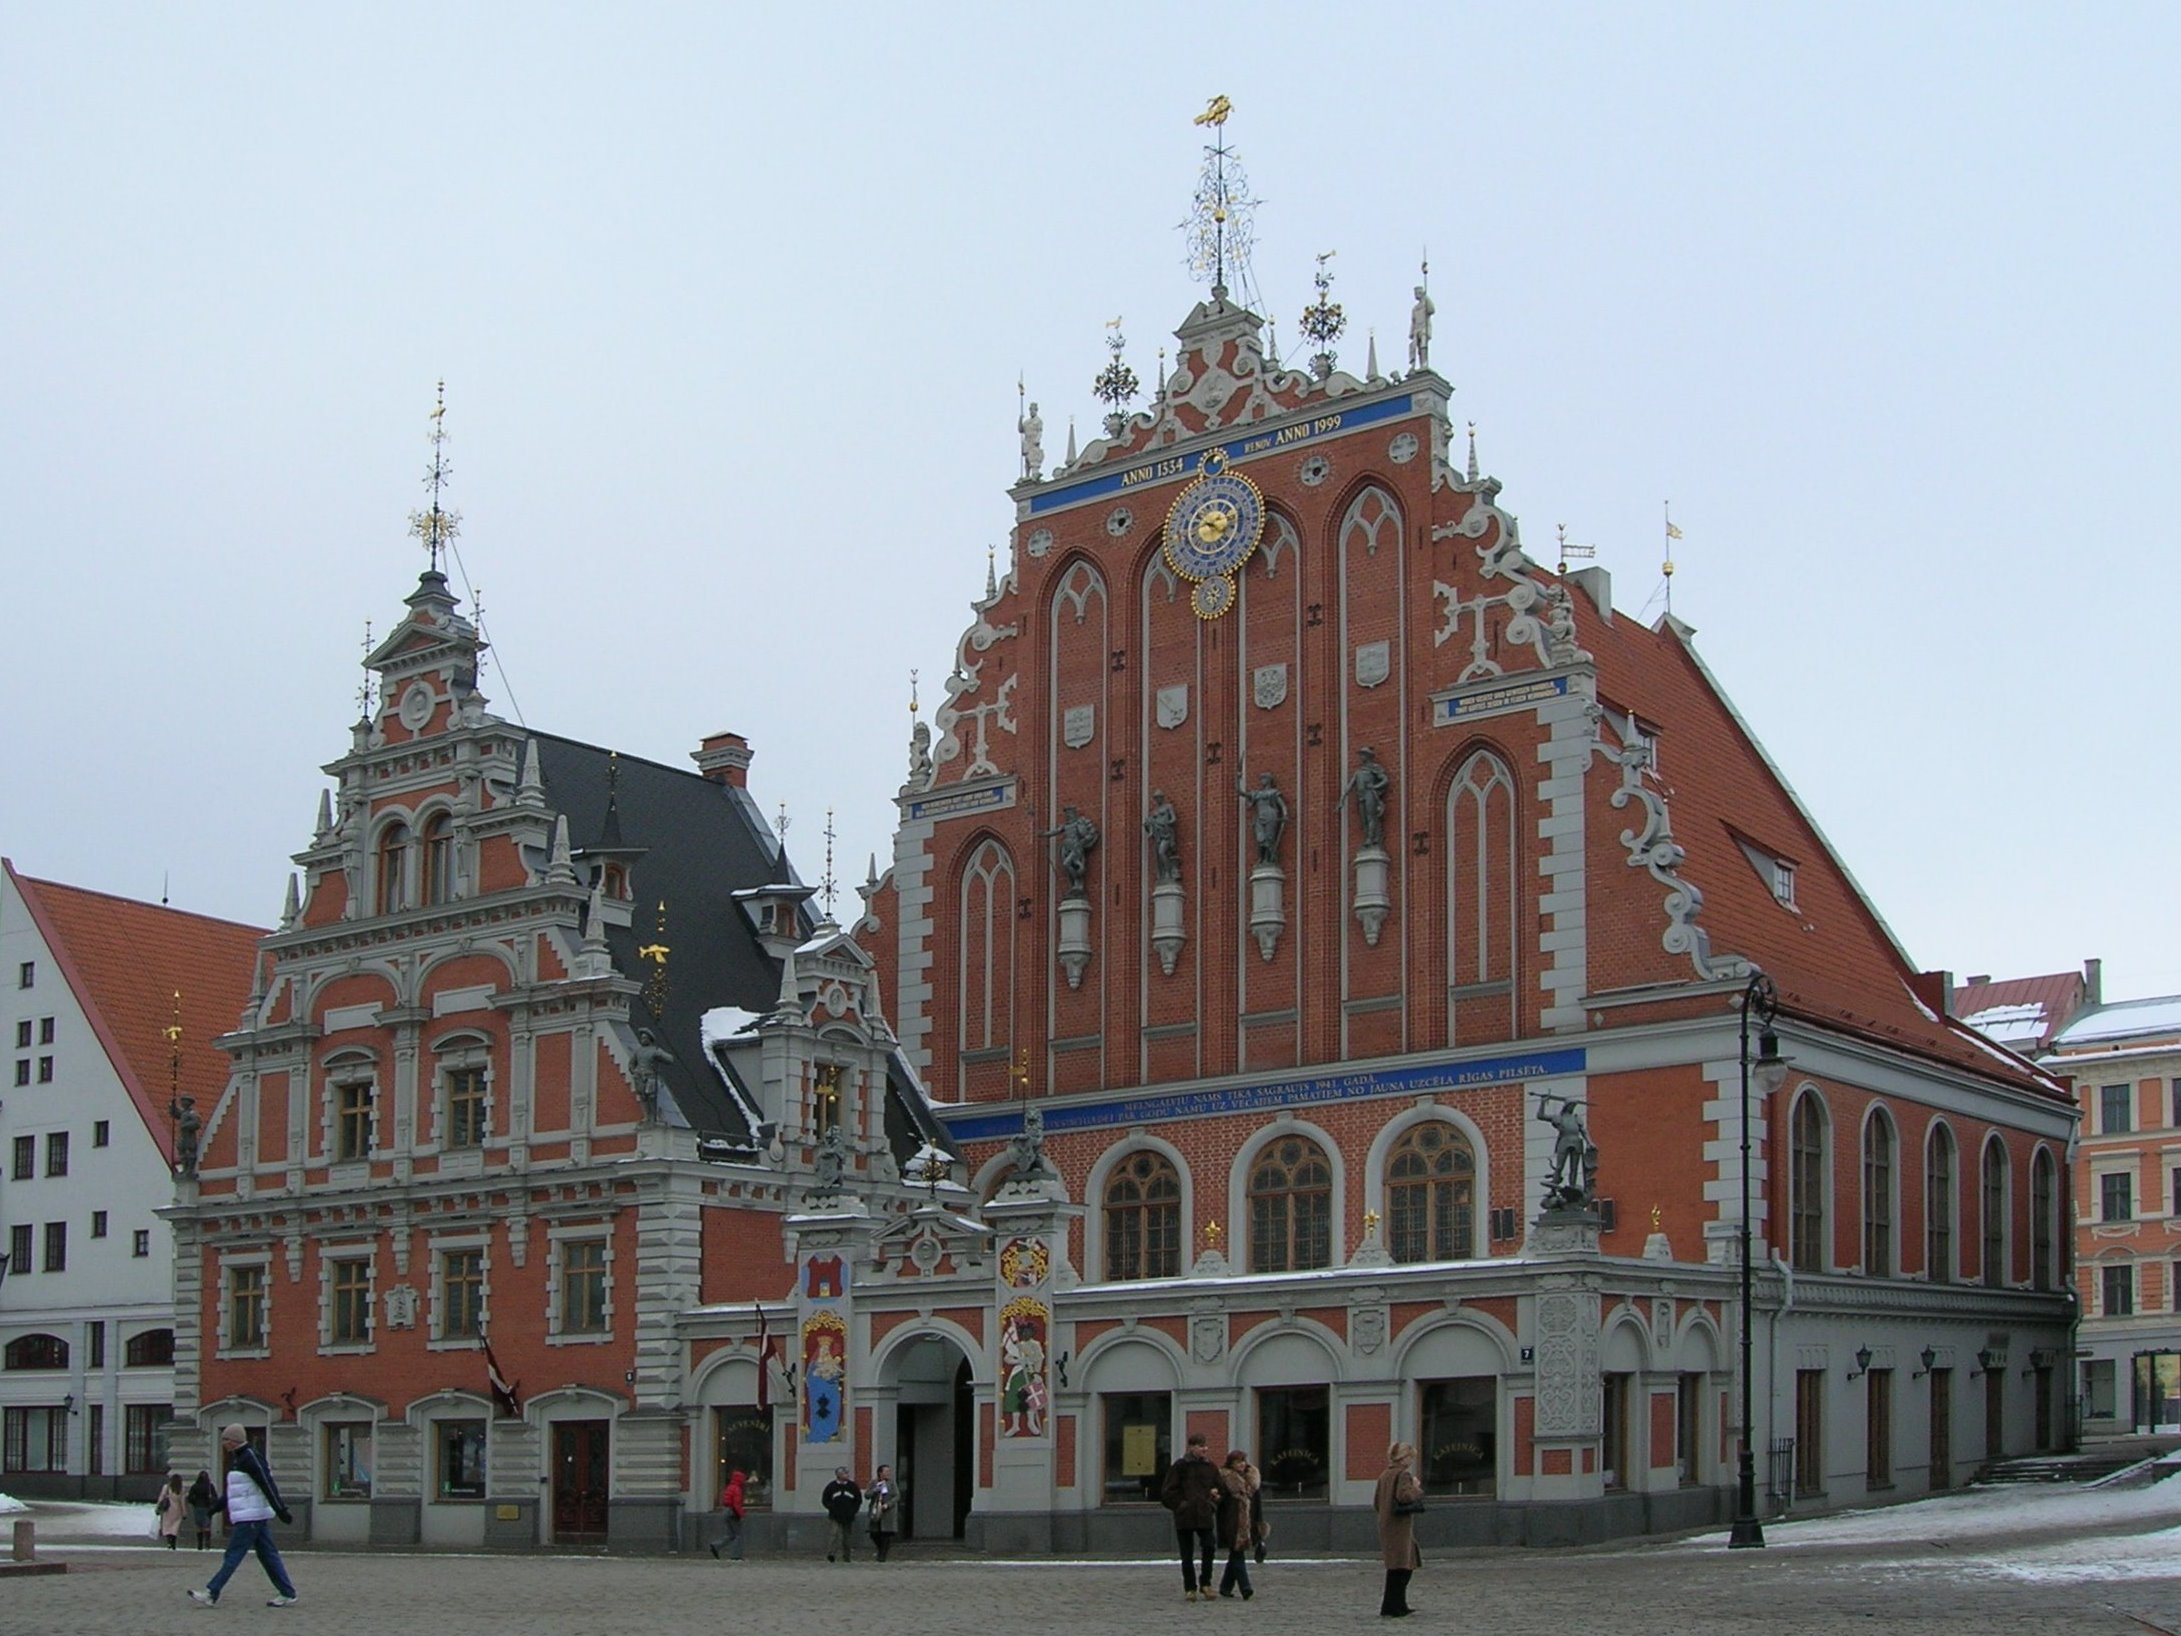 http://upload.wikimedia.org/wikipedia/commons/d/dc/Riga_-_House_of_Blackheads.jpg